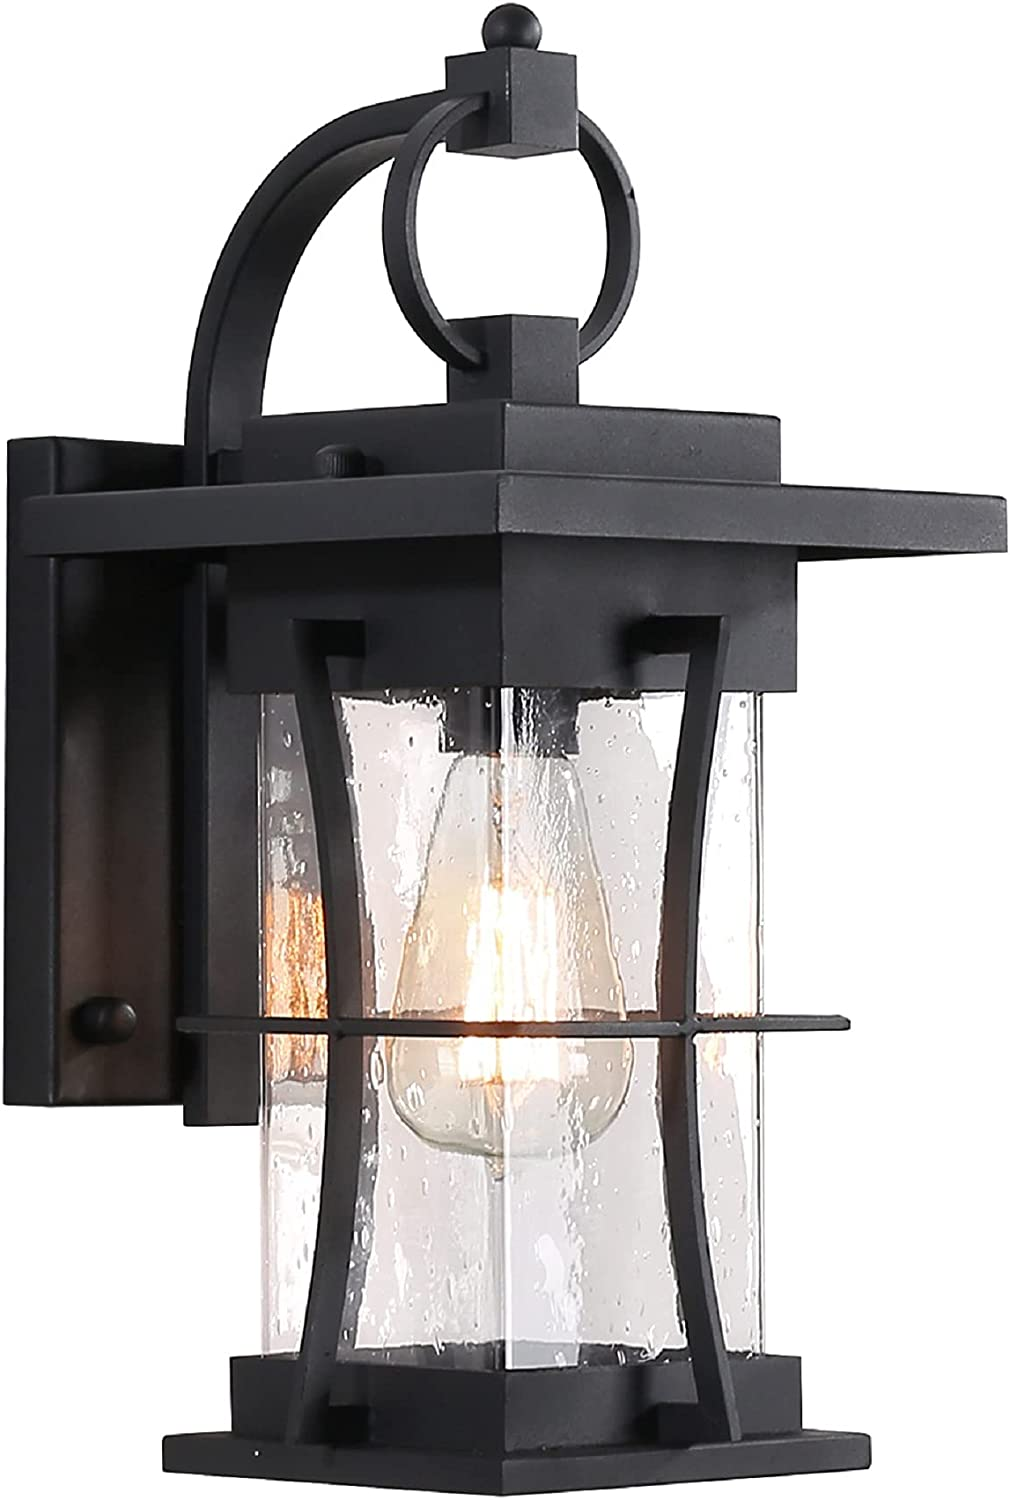 Outdoor Wall Light Fixture Purchase free Mo Exterior Tewei Fixtures